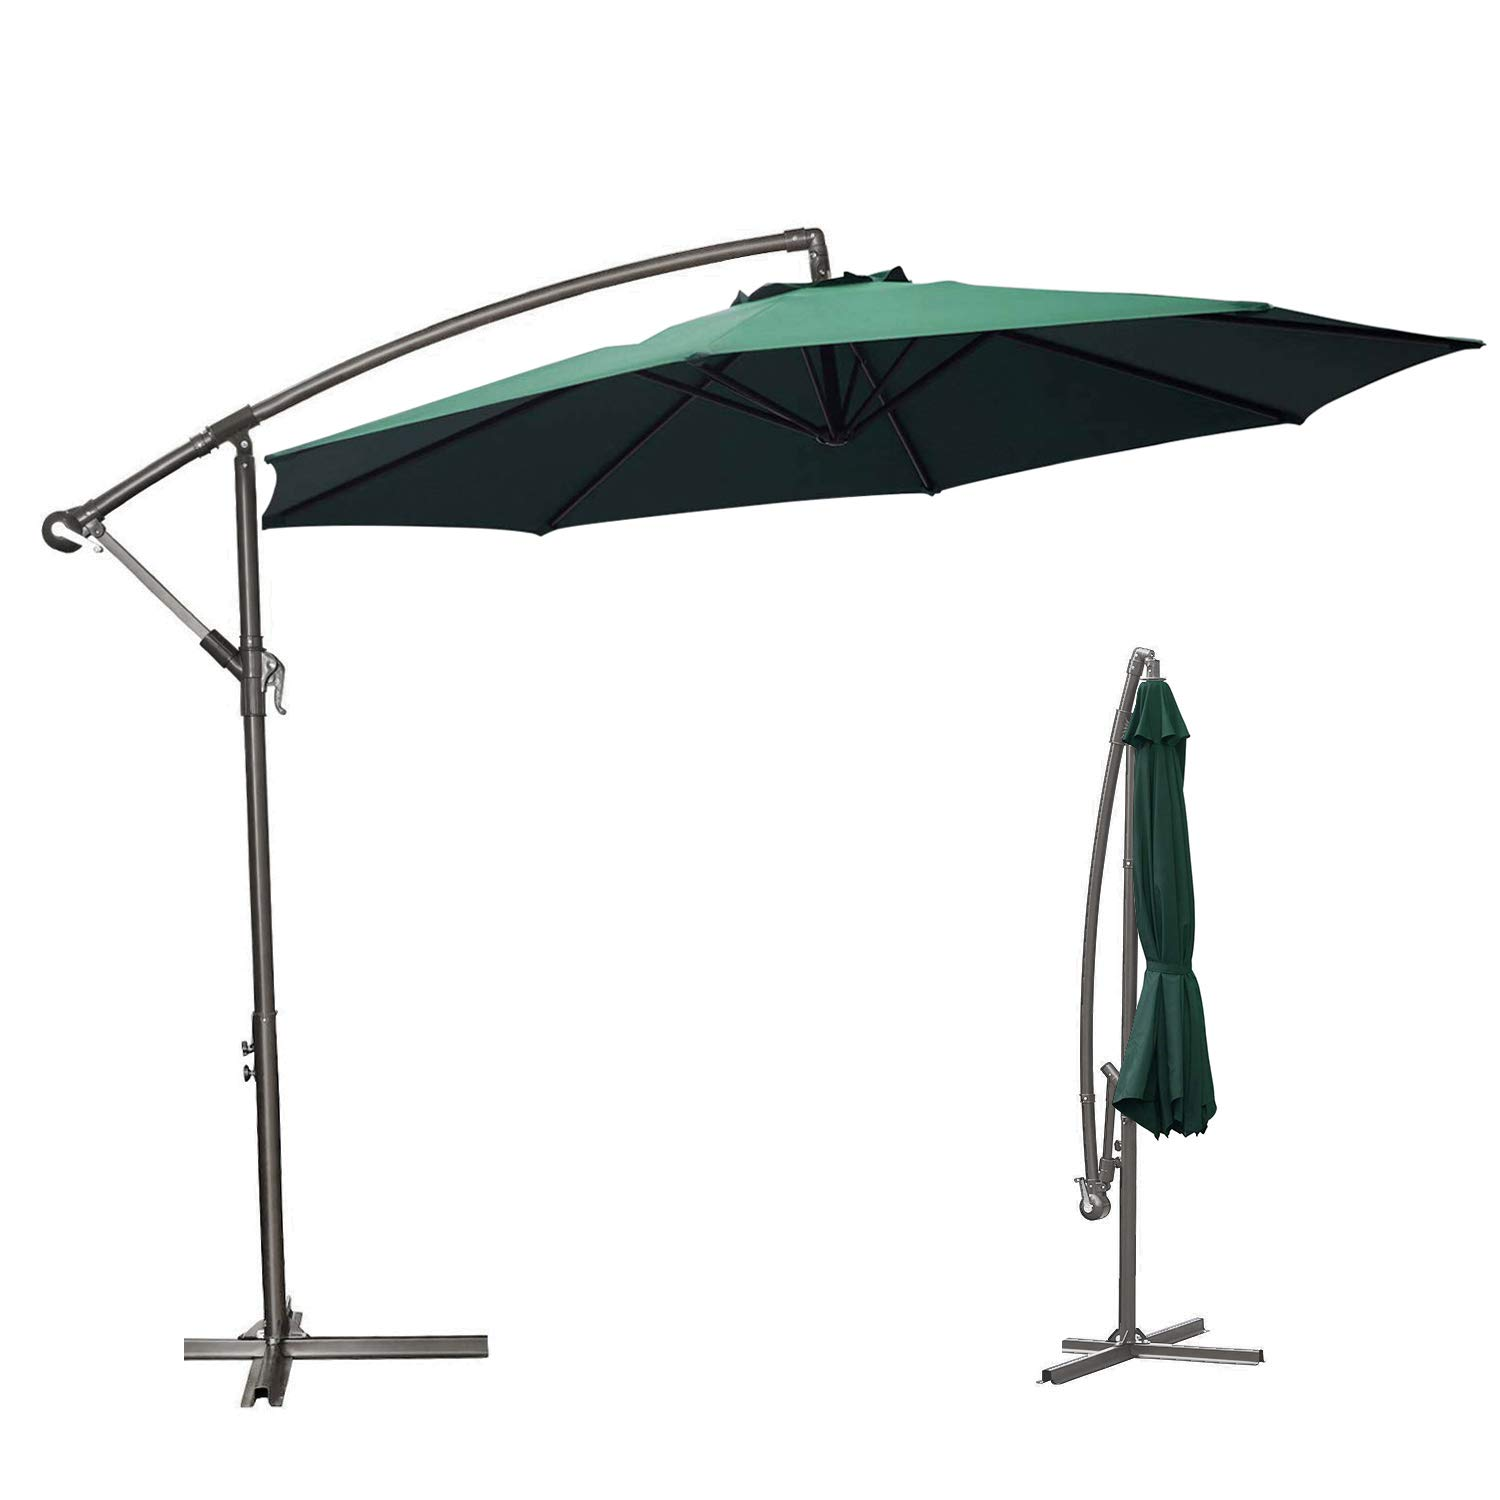 soges 10 Feet Patio Cantilever Umbrella Outdoor Offset Umbrella Market Hanging Umbrella with Tilt Adjustment Crank for Up Down, Atrovirens, LHTJXJS3AT